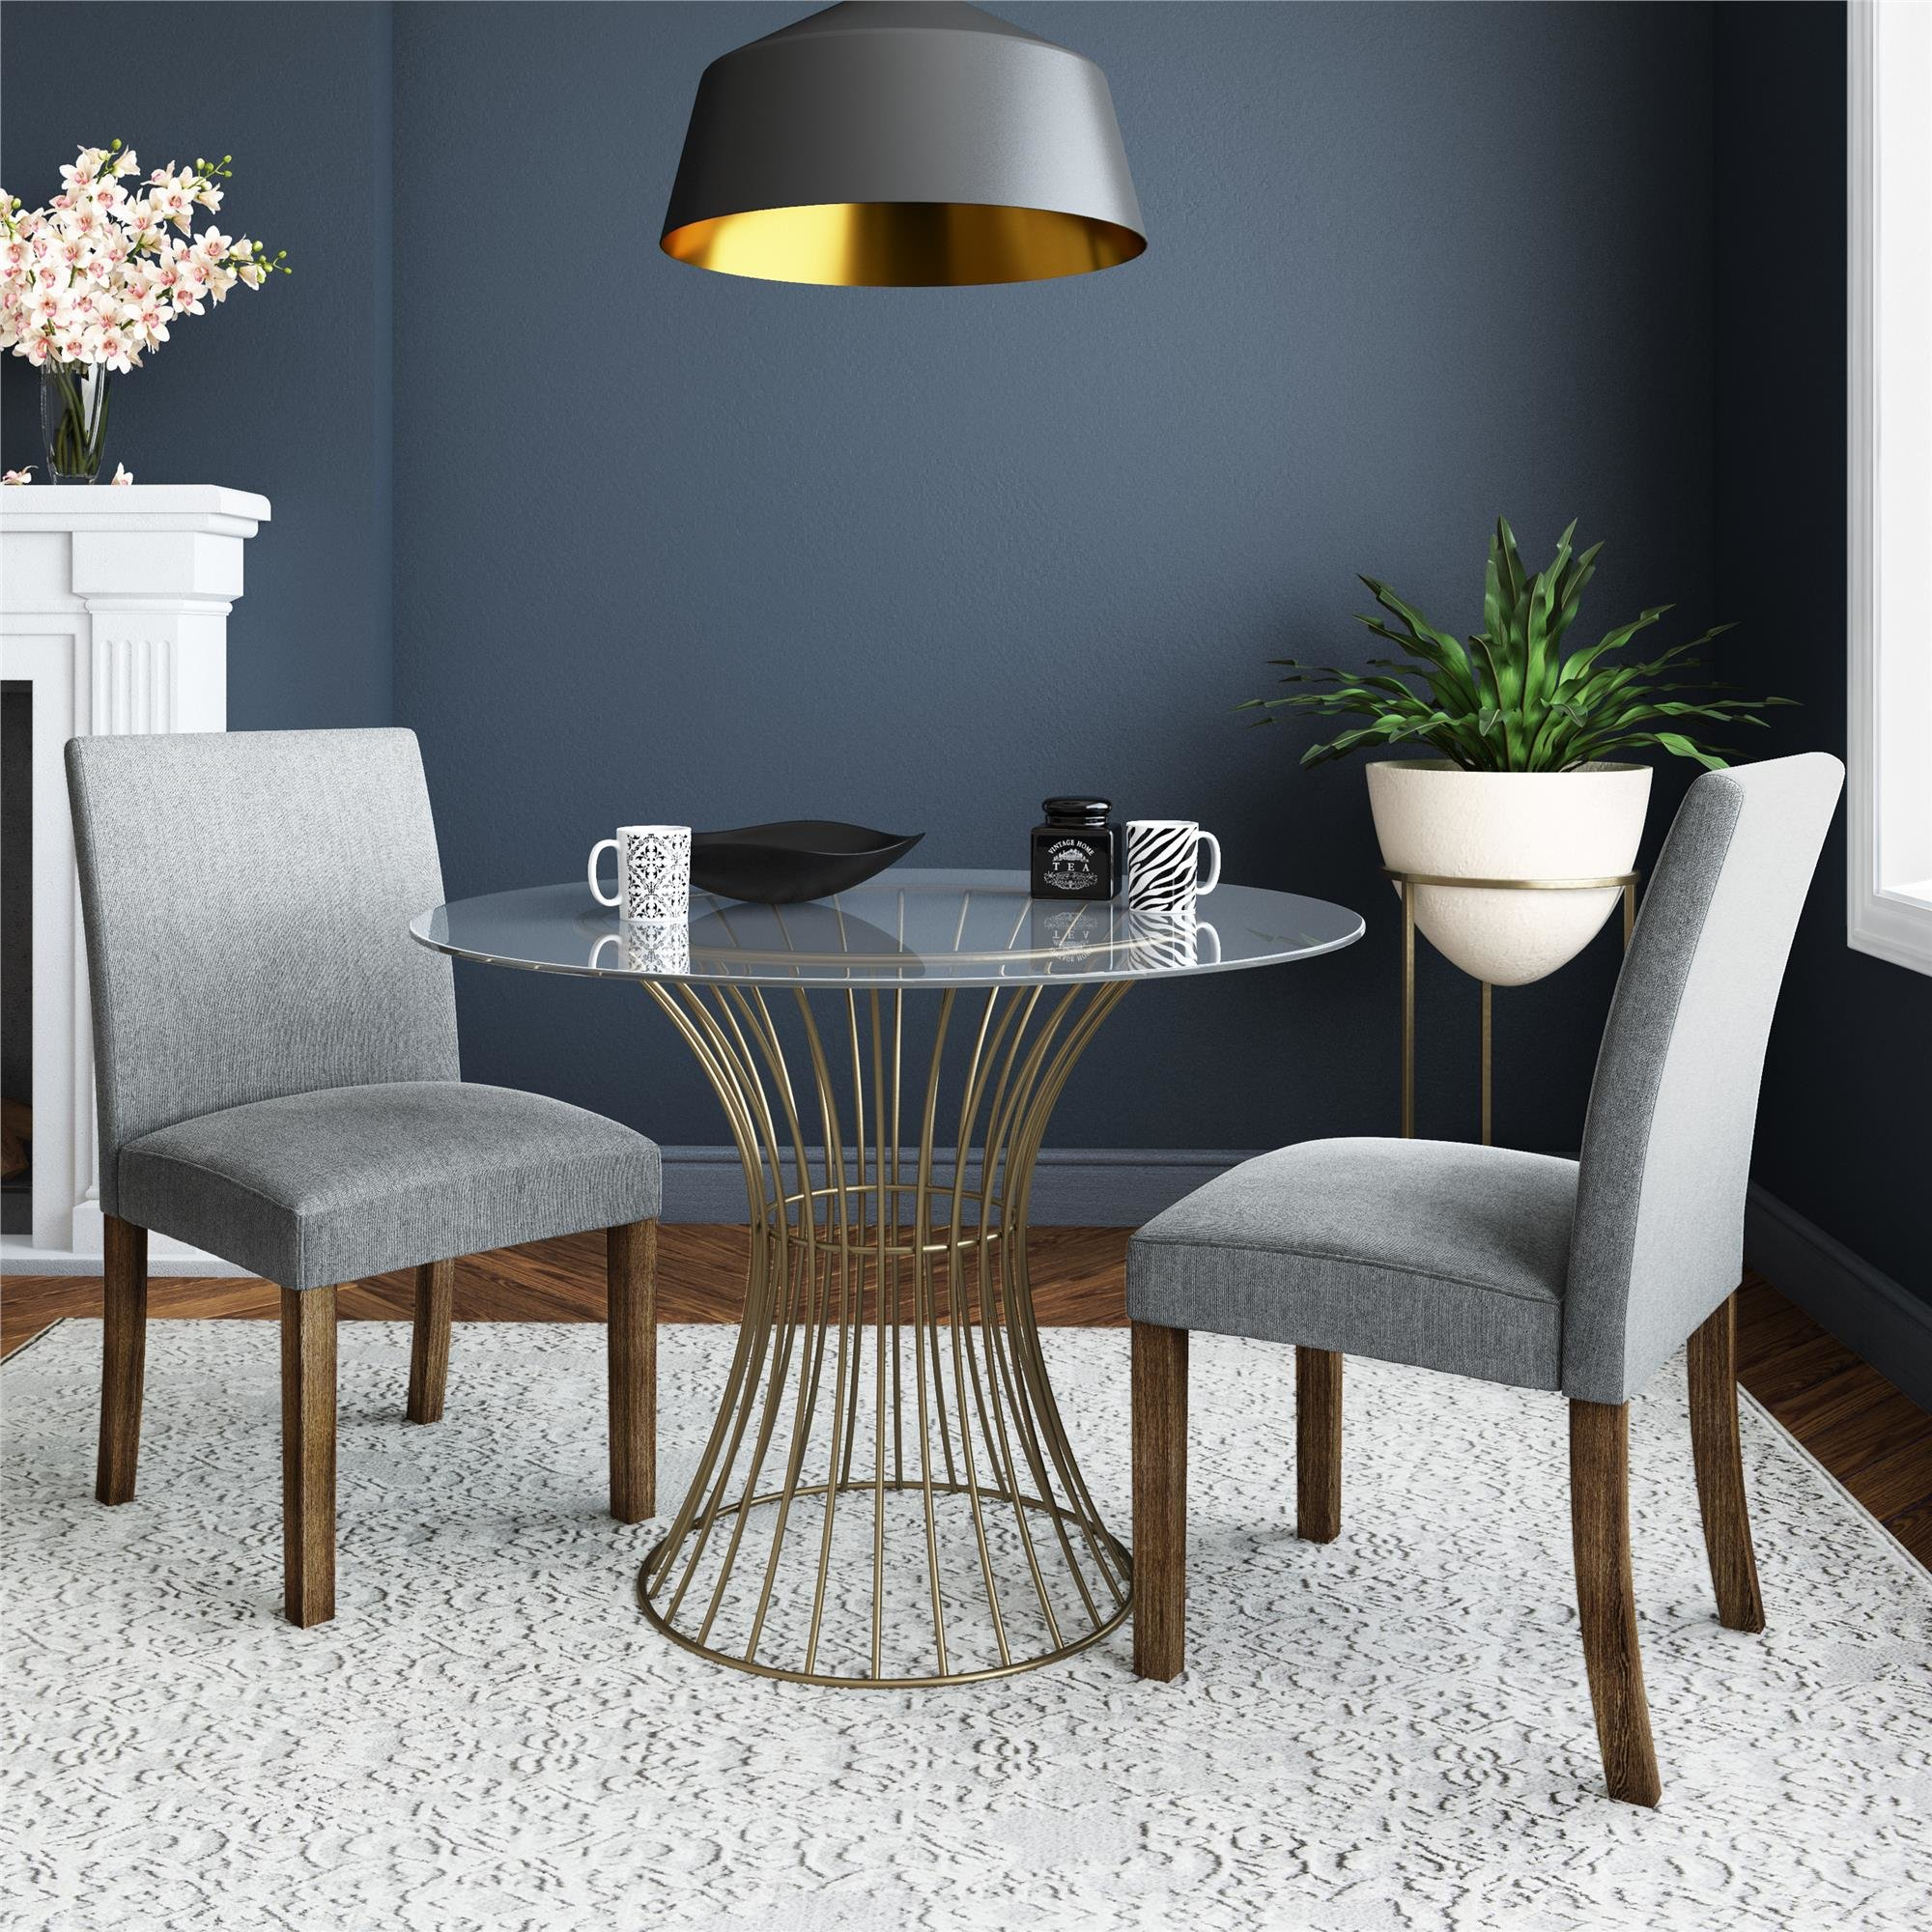 Well Liked 3 Piece Dining Sets Within Cosmolivingcosmopolitan Westwood 3 Piece Dining Set & Reviews (#20 of 20)